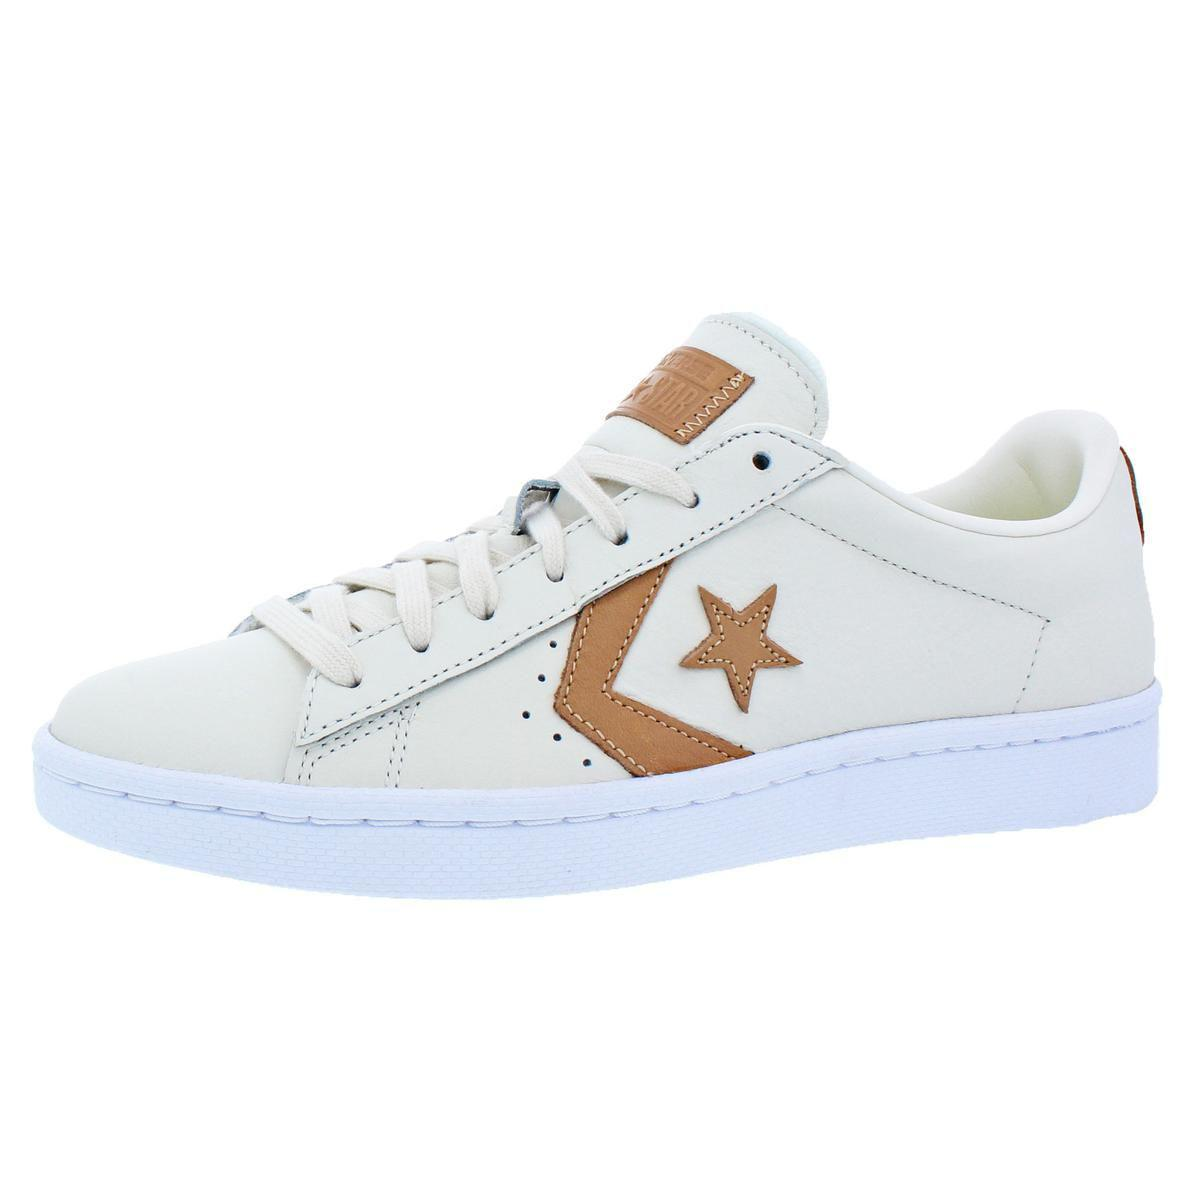 423aee8a96c0 Lyst - Converse Mens Pl 76 Ox Lunarlon Low-top Fashion Sneakers in ...